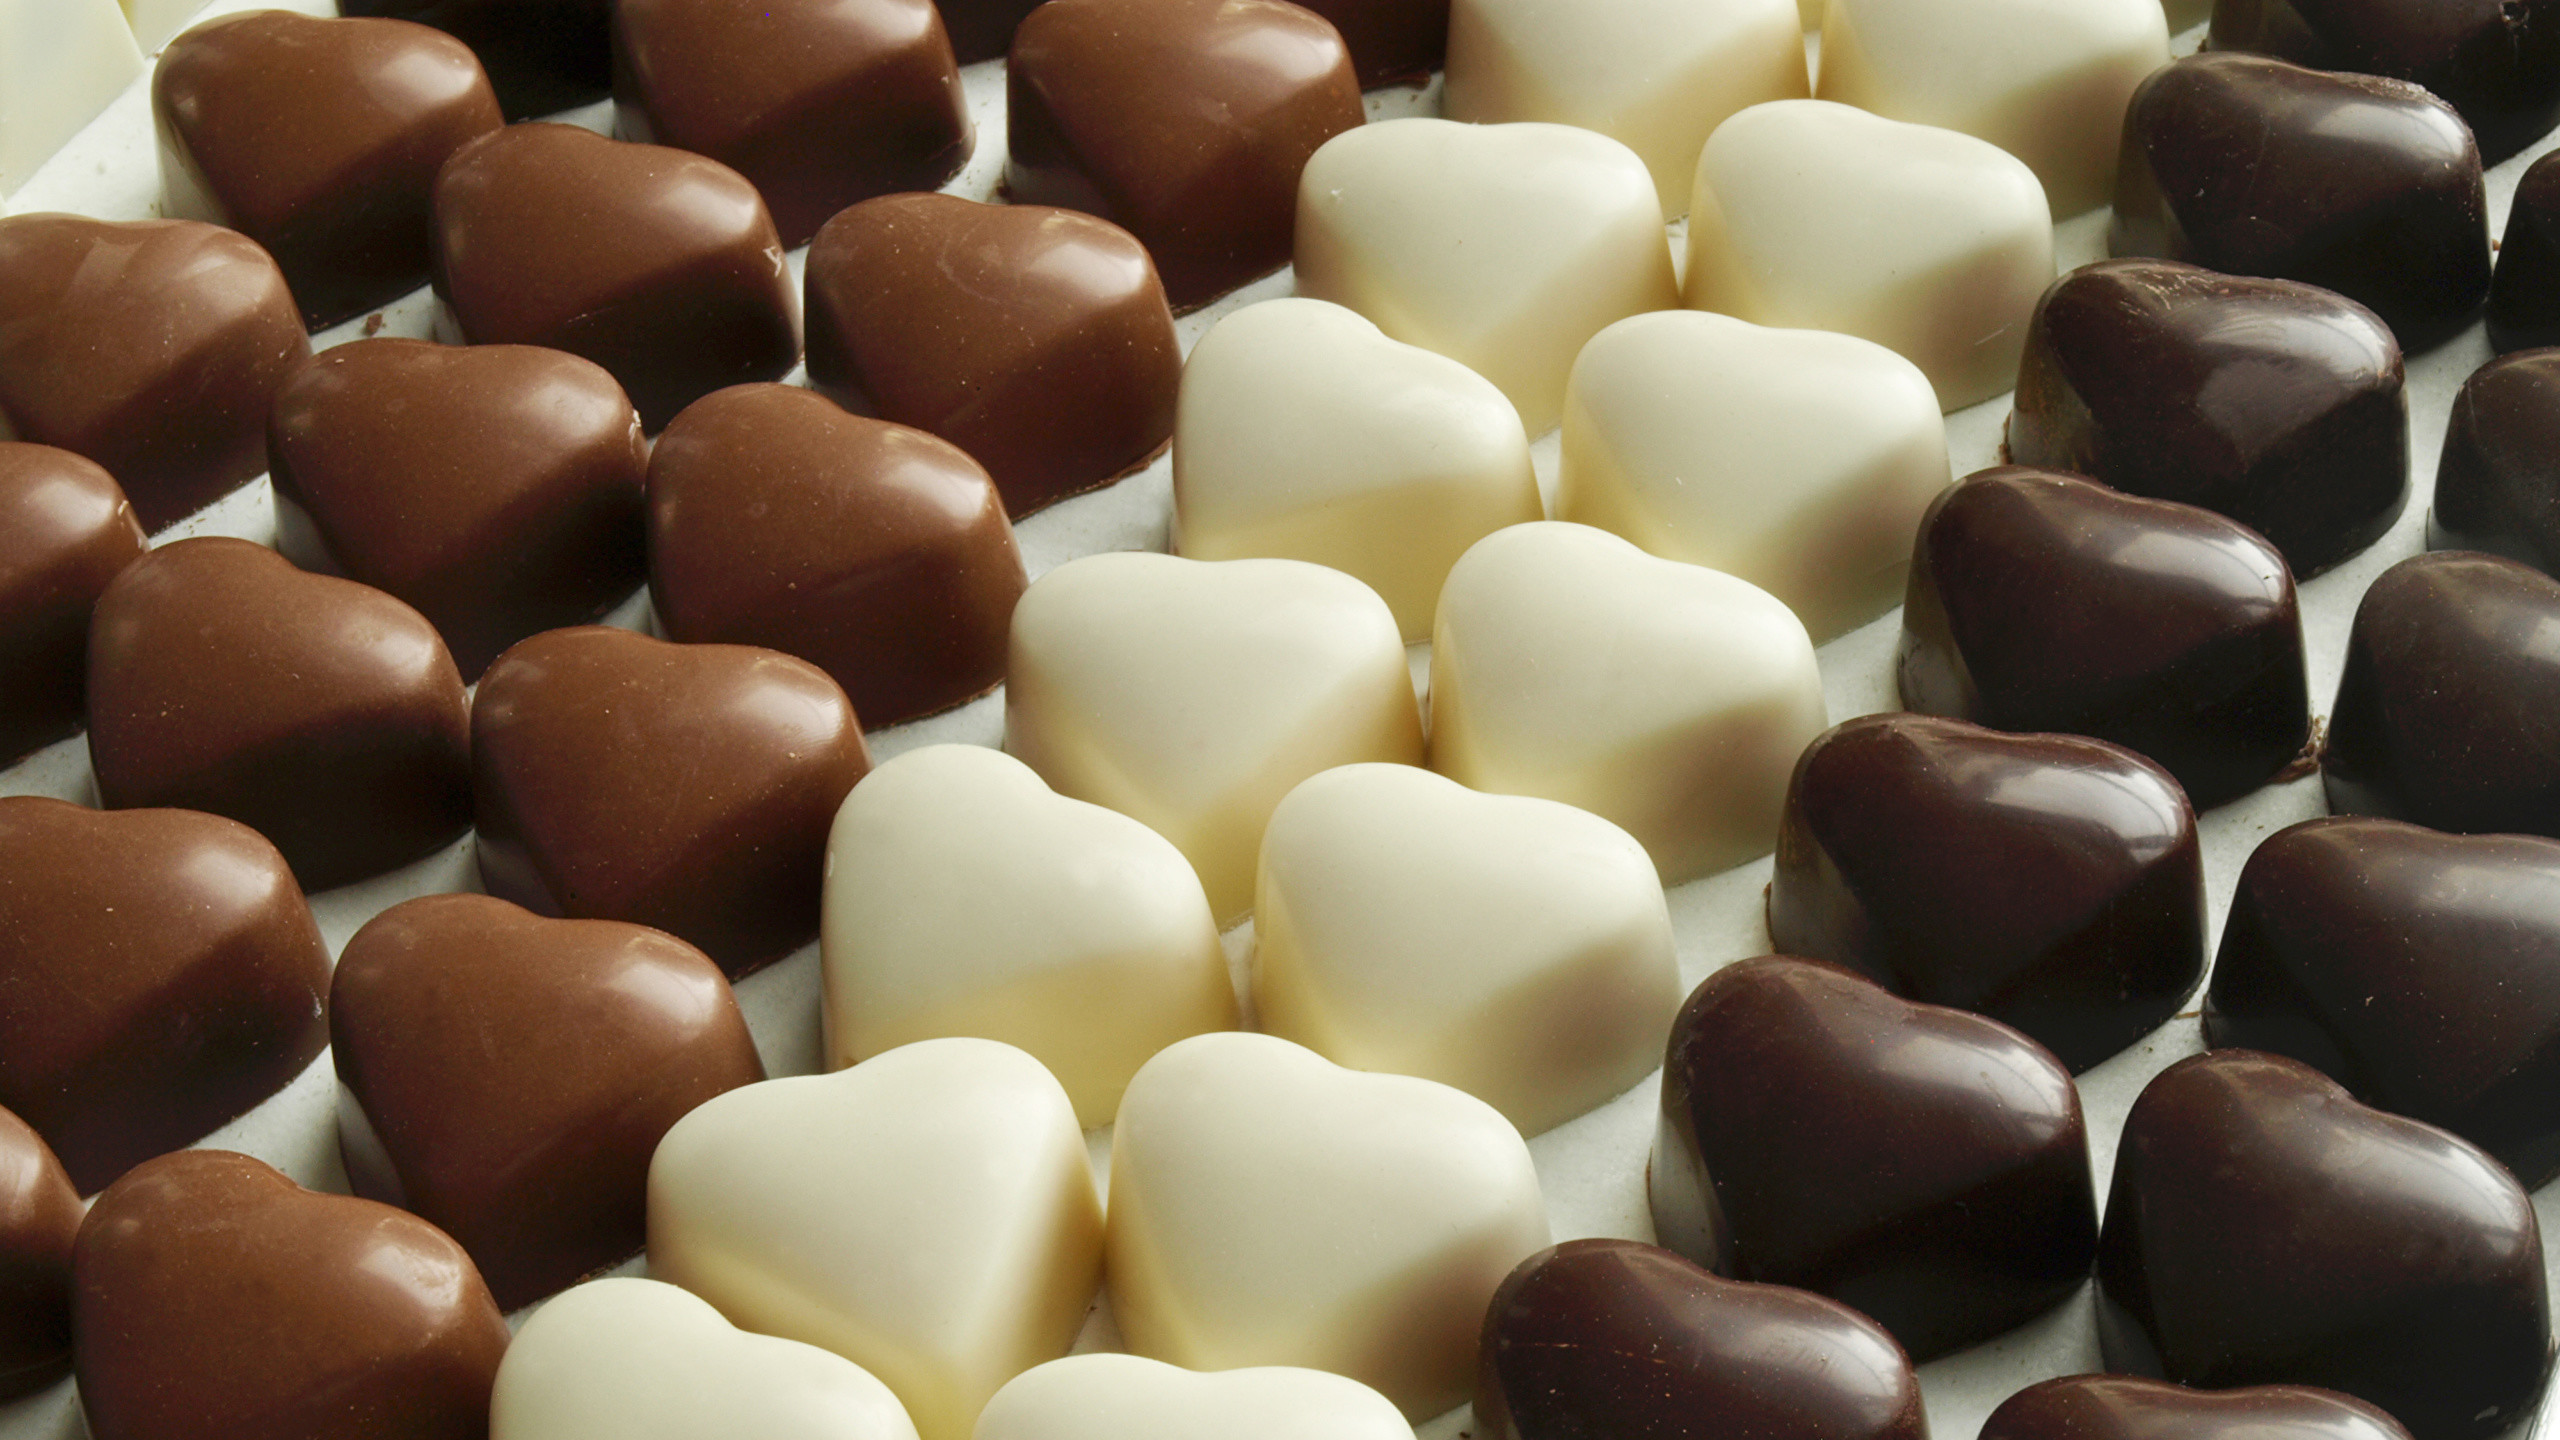 2560x1440 Images Heart Chocolate Candy Food Many Sweets